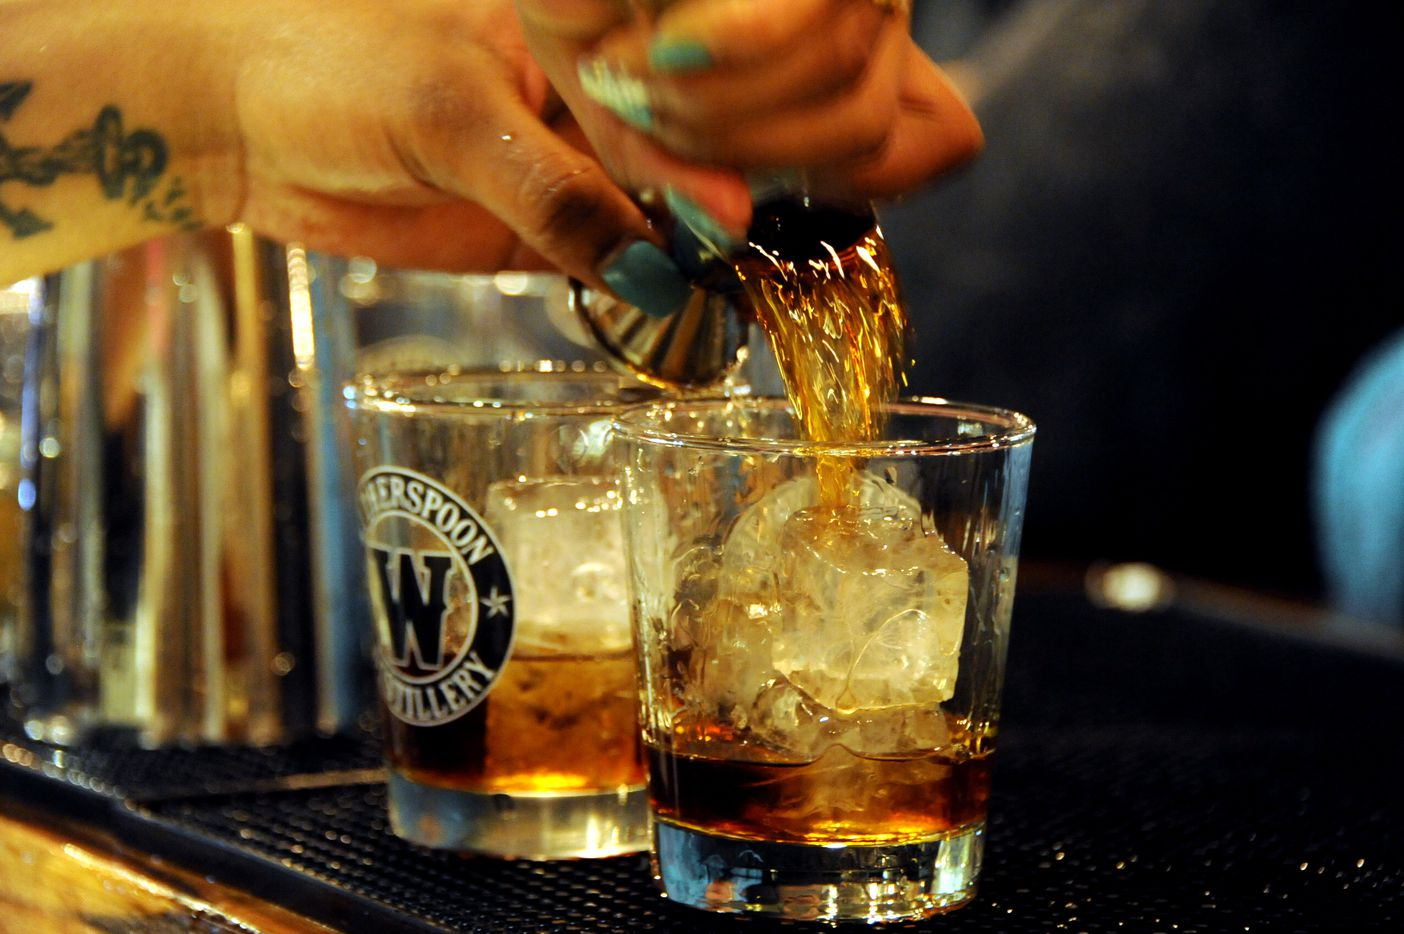 Bourbon is poured for a specialty cocktail at Witherspoon Distillery in Lewisville, TX on October 24, 2015.